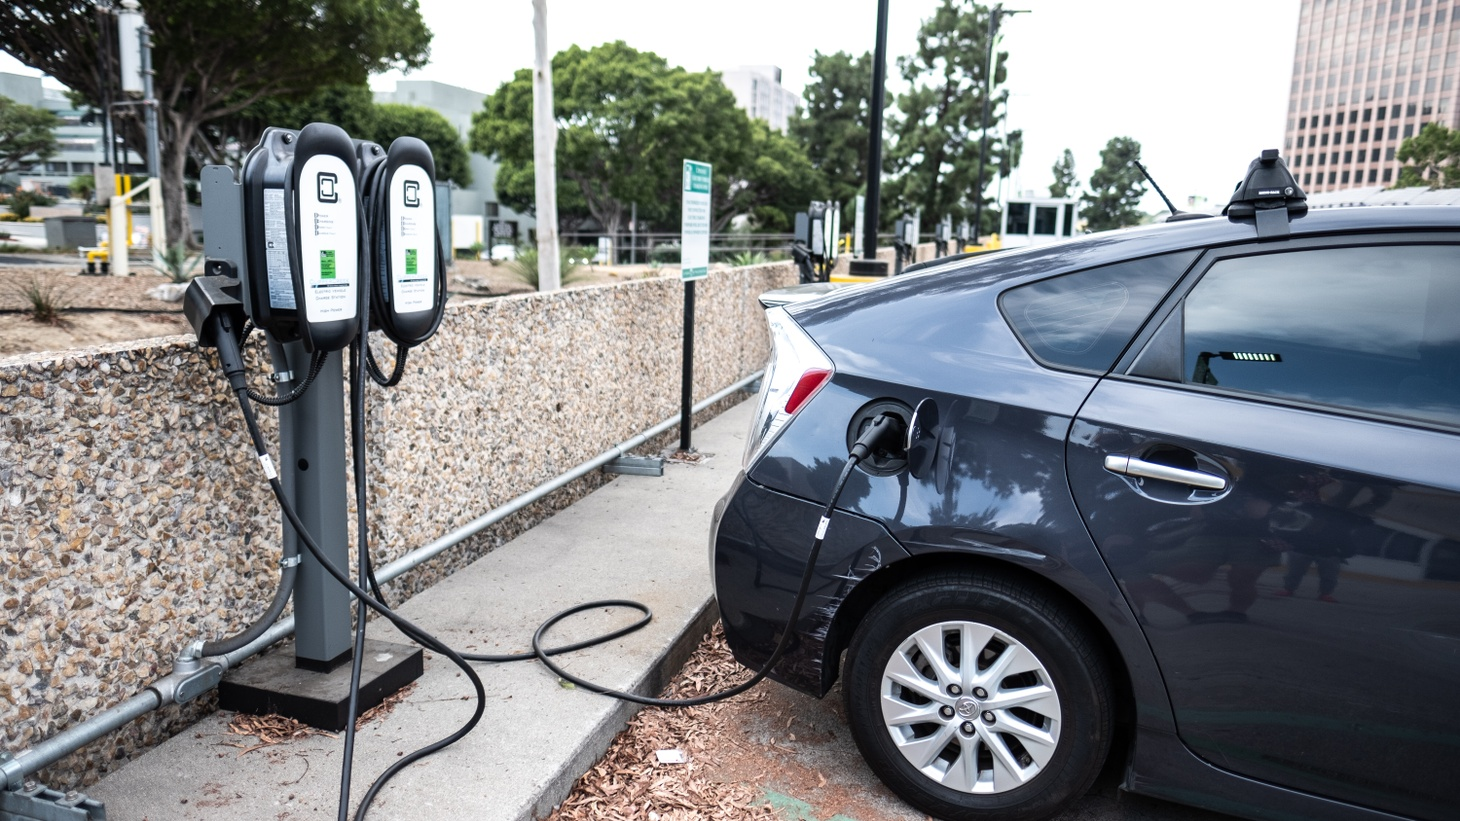 A Toyota Prius is plugged in at a public charging station in downtown Los Angeles. President Biden's new infrastructure plan includes money for building more electric vehicle charging stations.